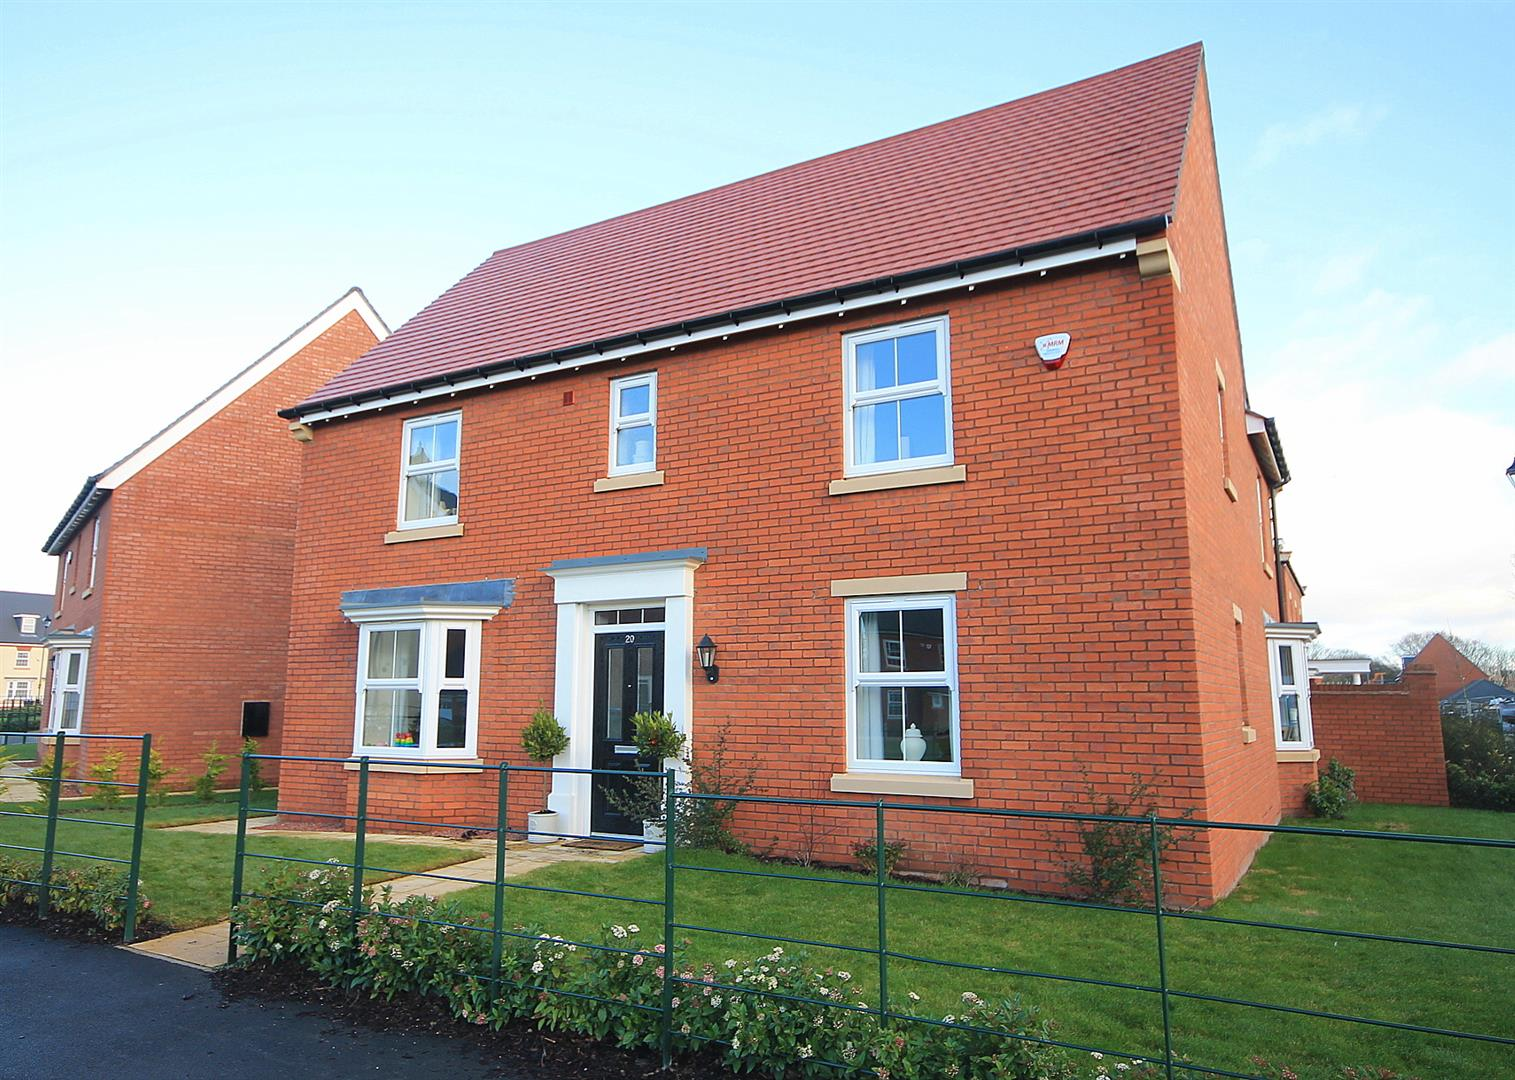 4 Bedrooms Detached House for sale in Richardby Crescent, Mount Oswald, Durham